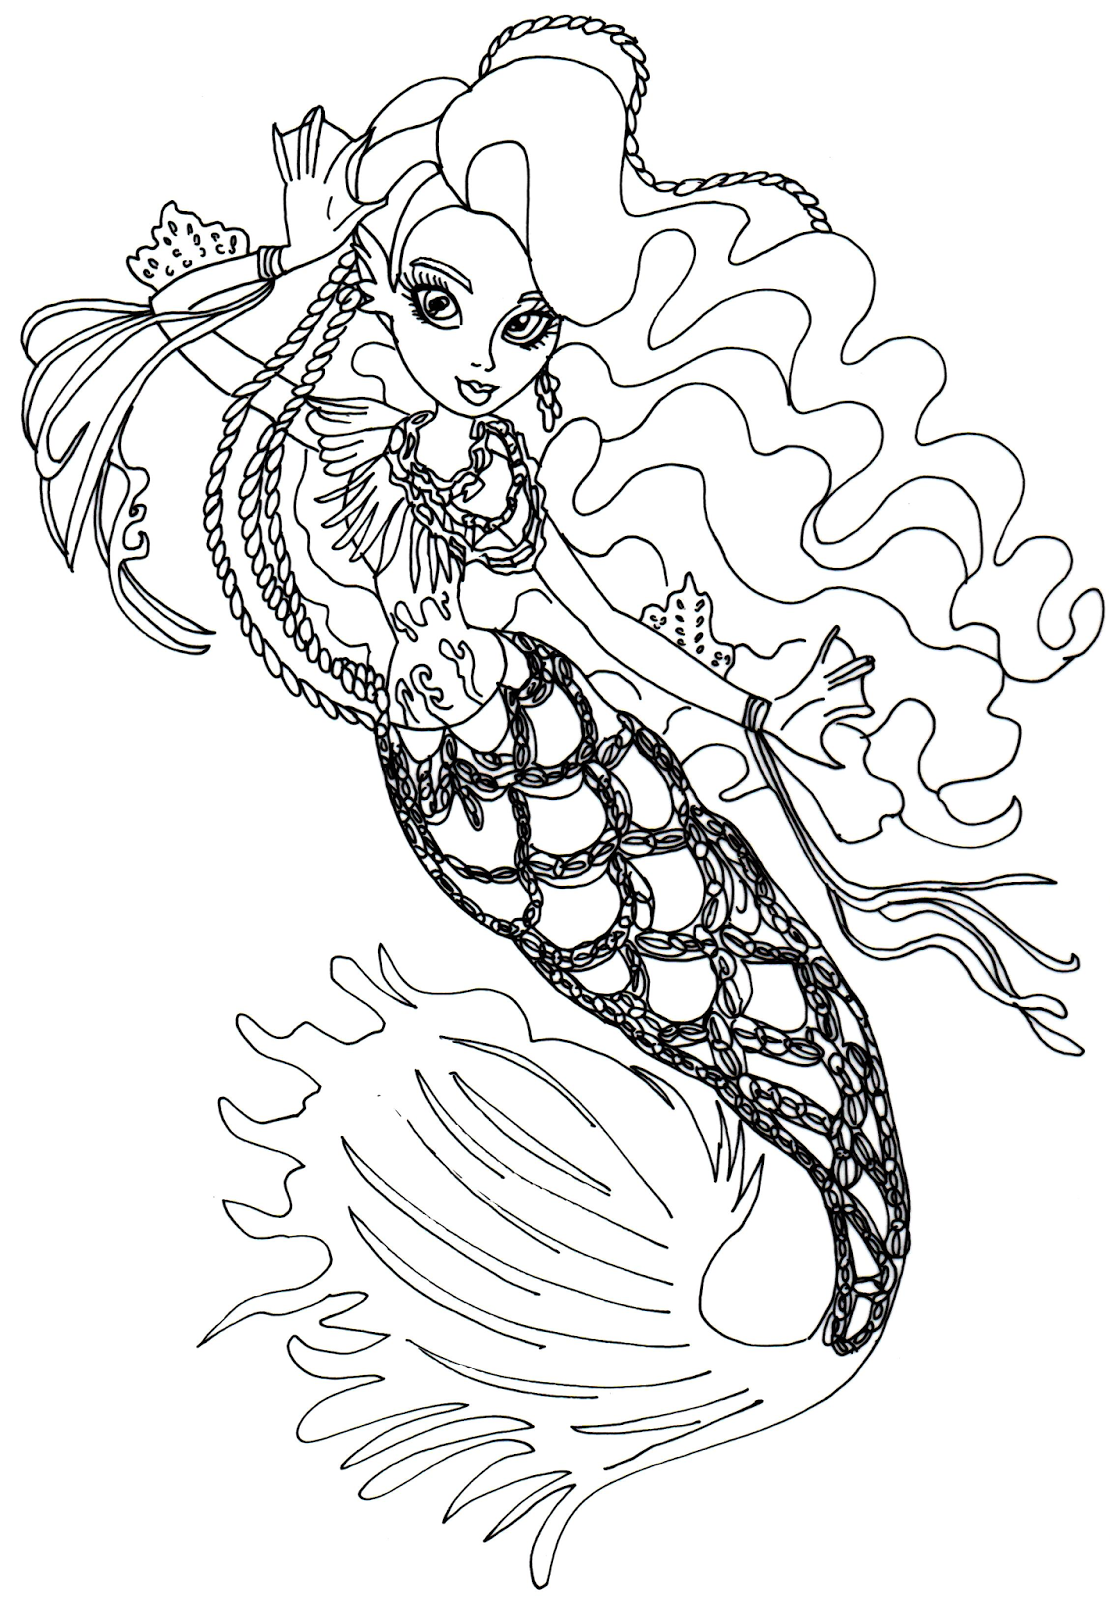 Free Printable Monster High Coloring Pages: Sirena Von Boo